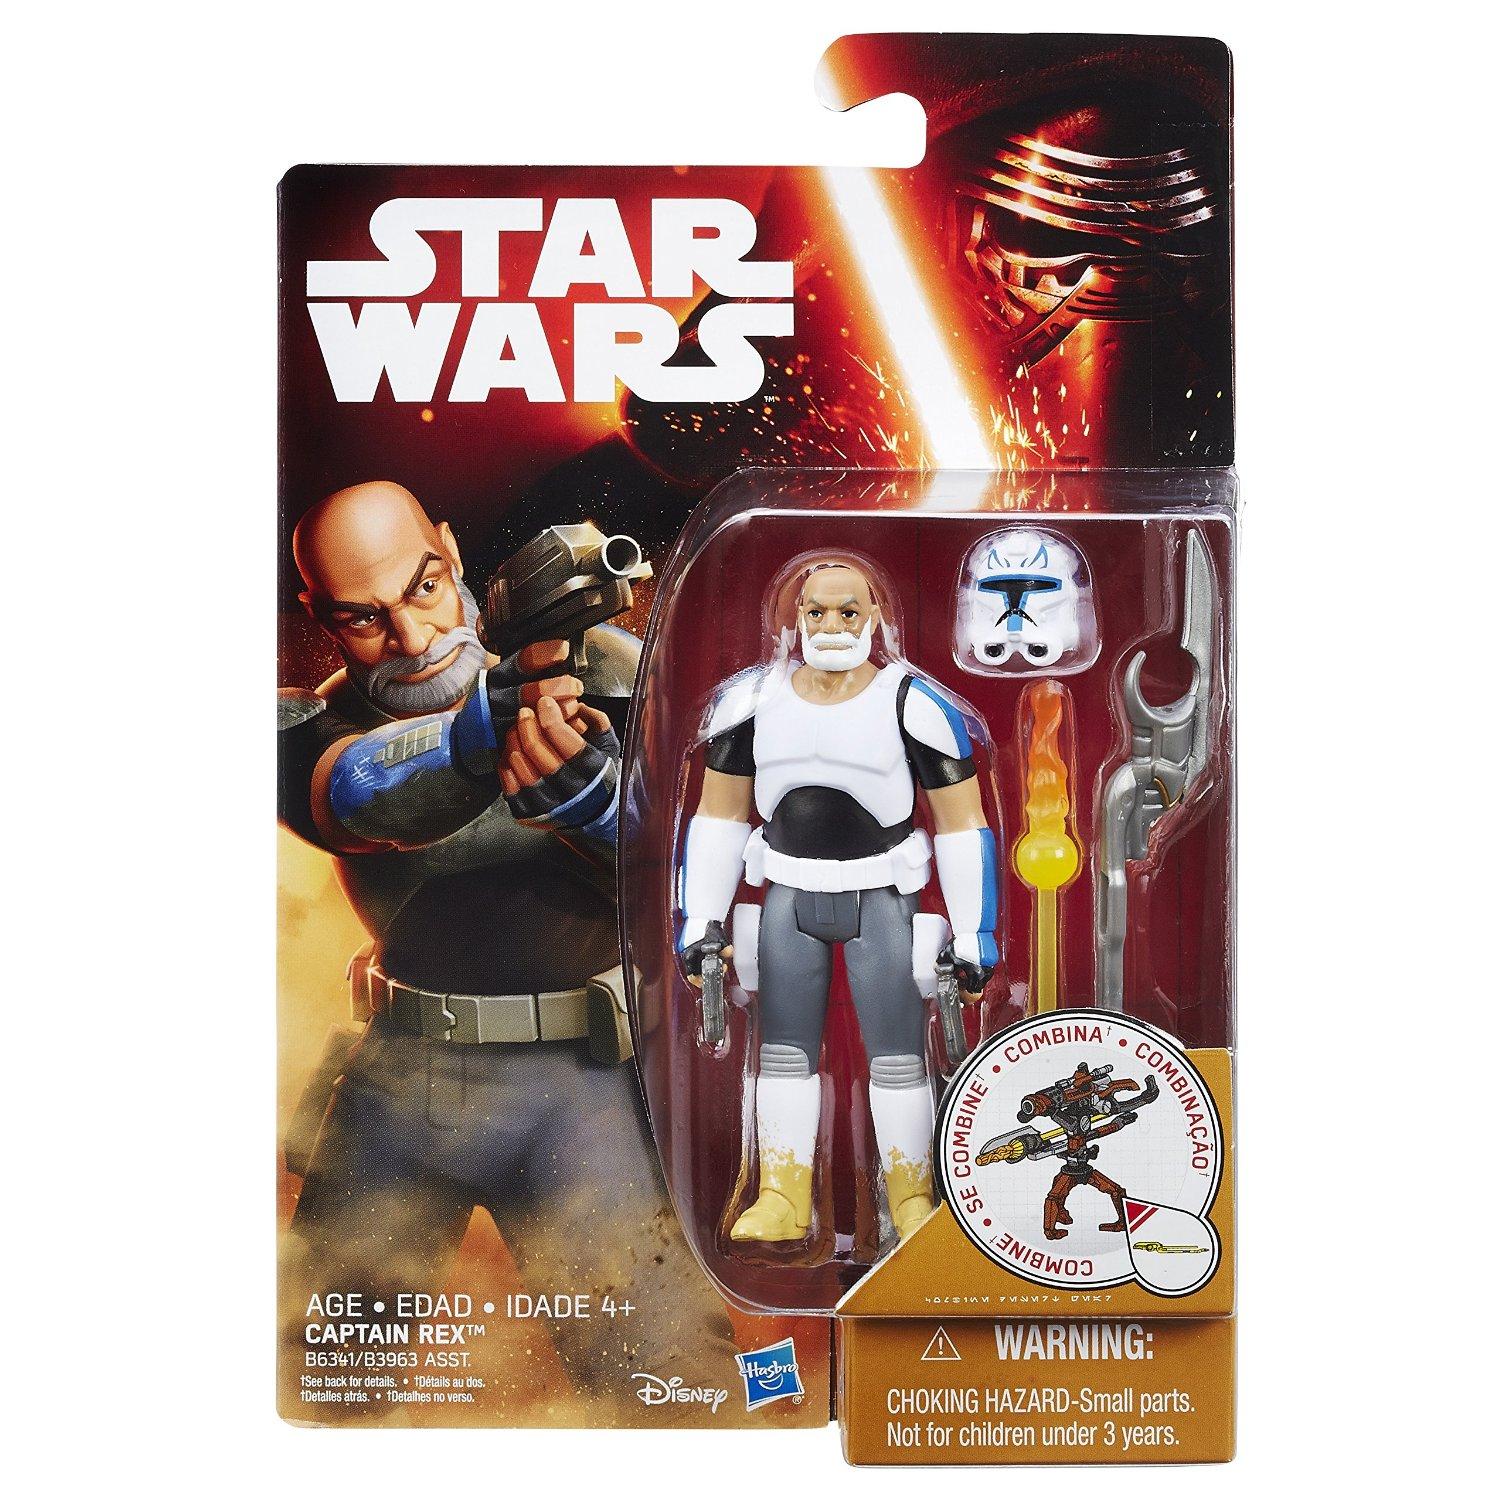 Star Wars The Force Awakens & Rebels Listings On Amazon